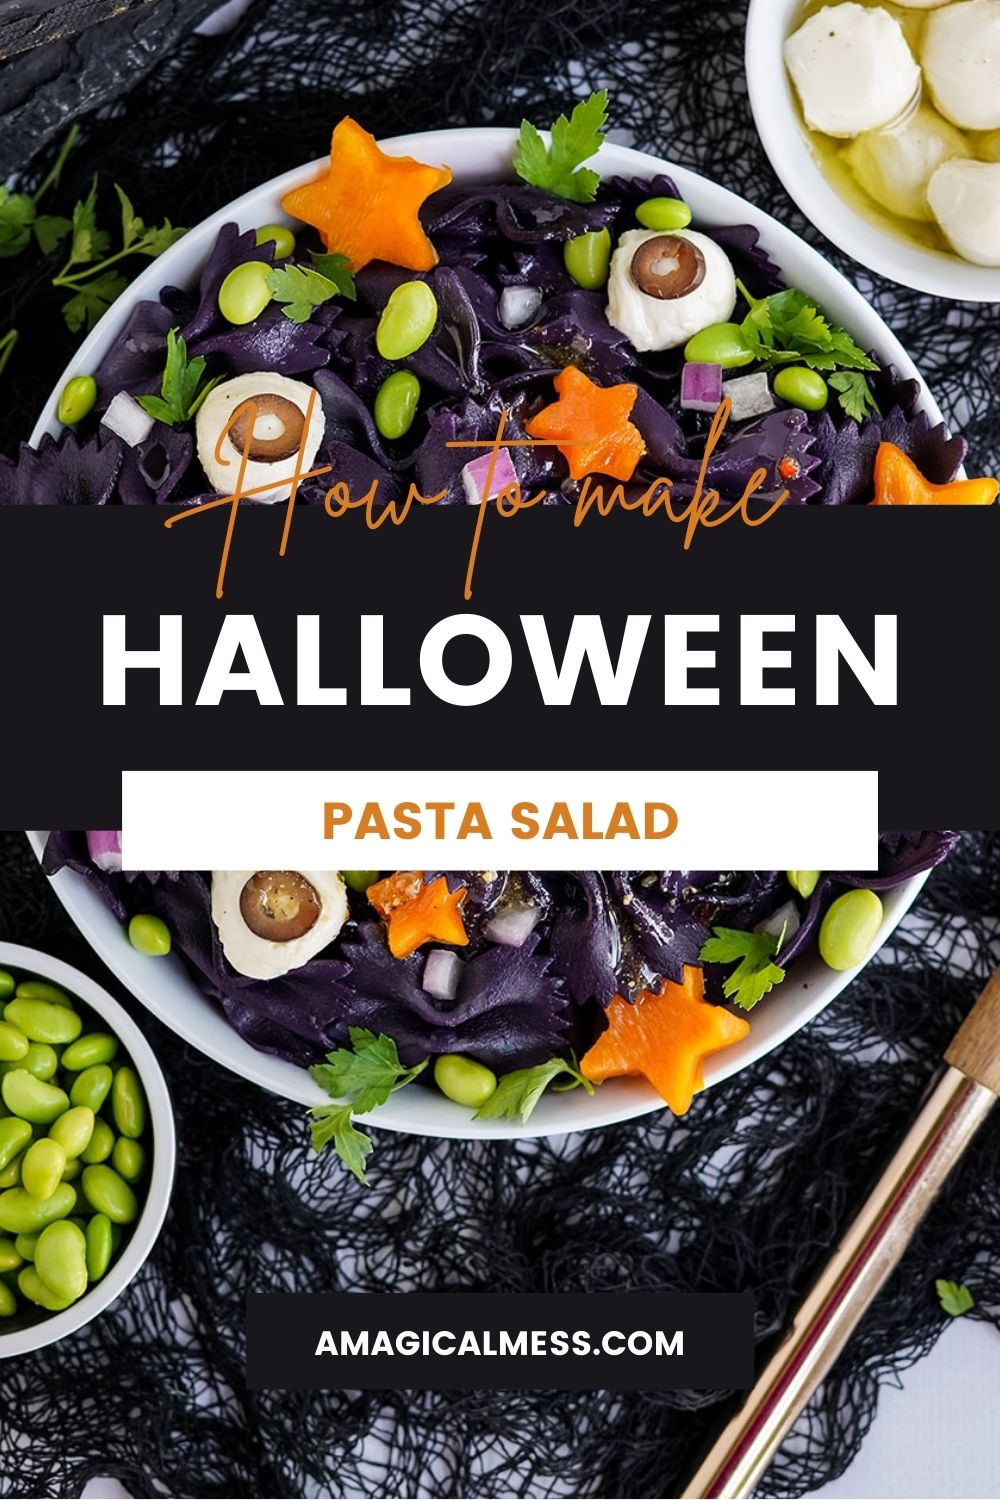 Bowl of pasta salad that looks spooky for Halloween.